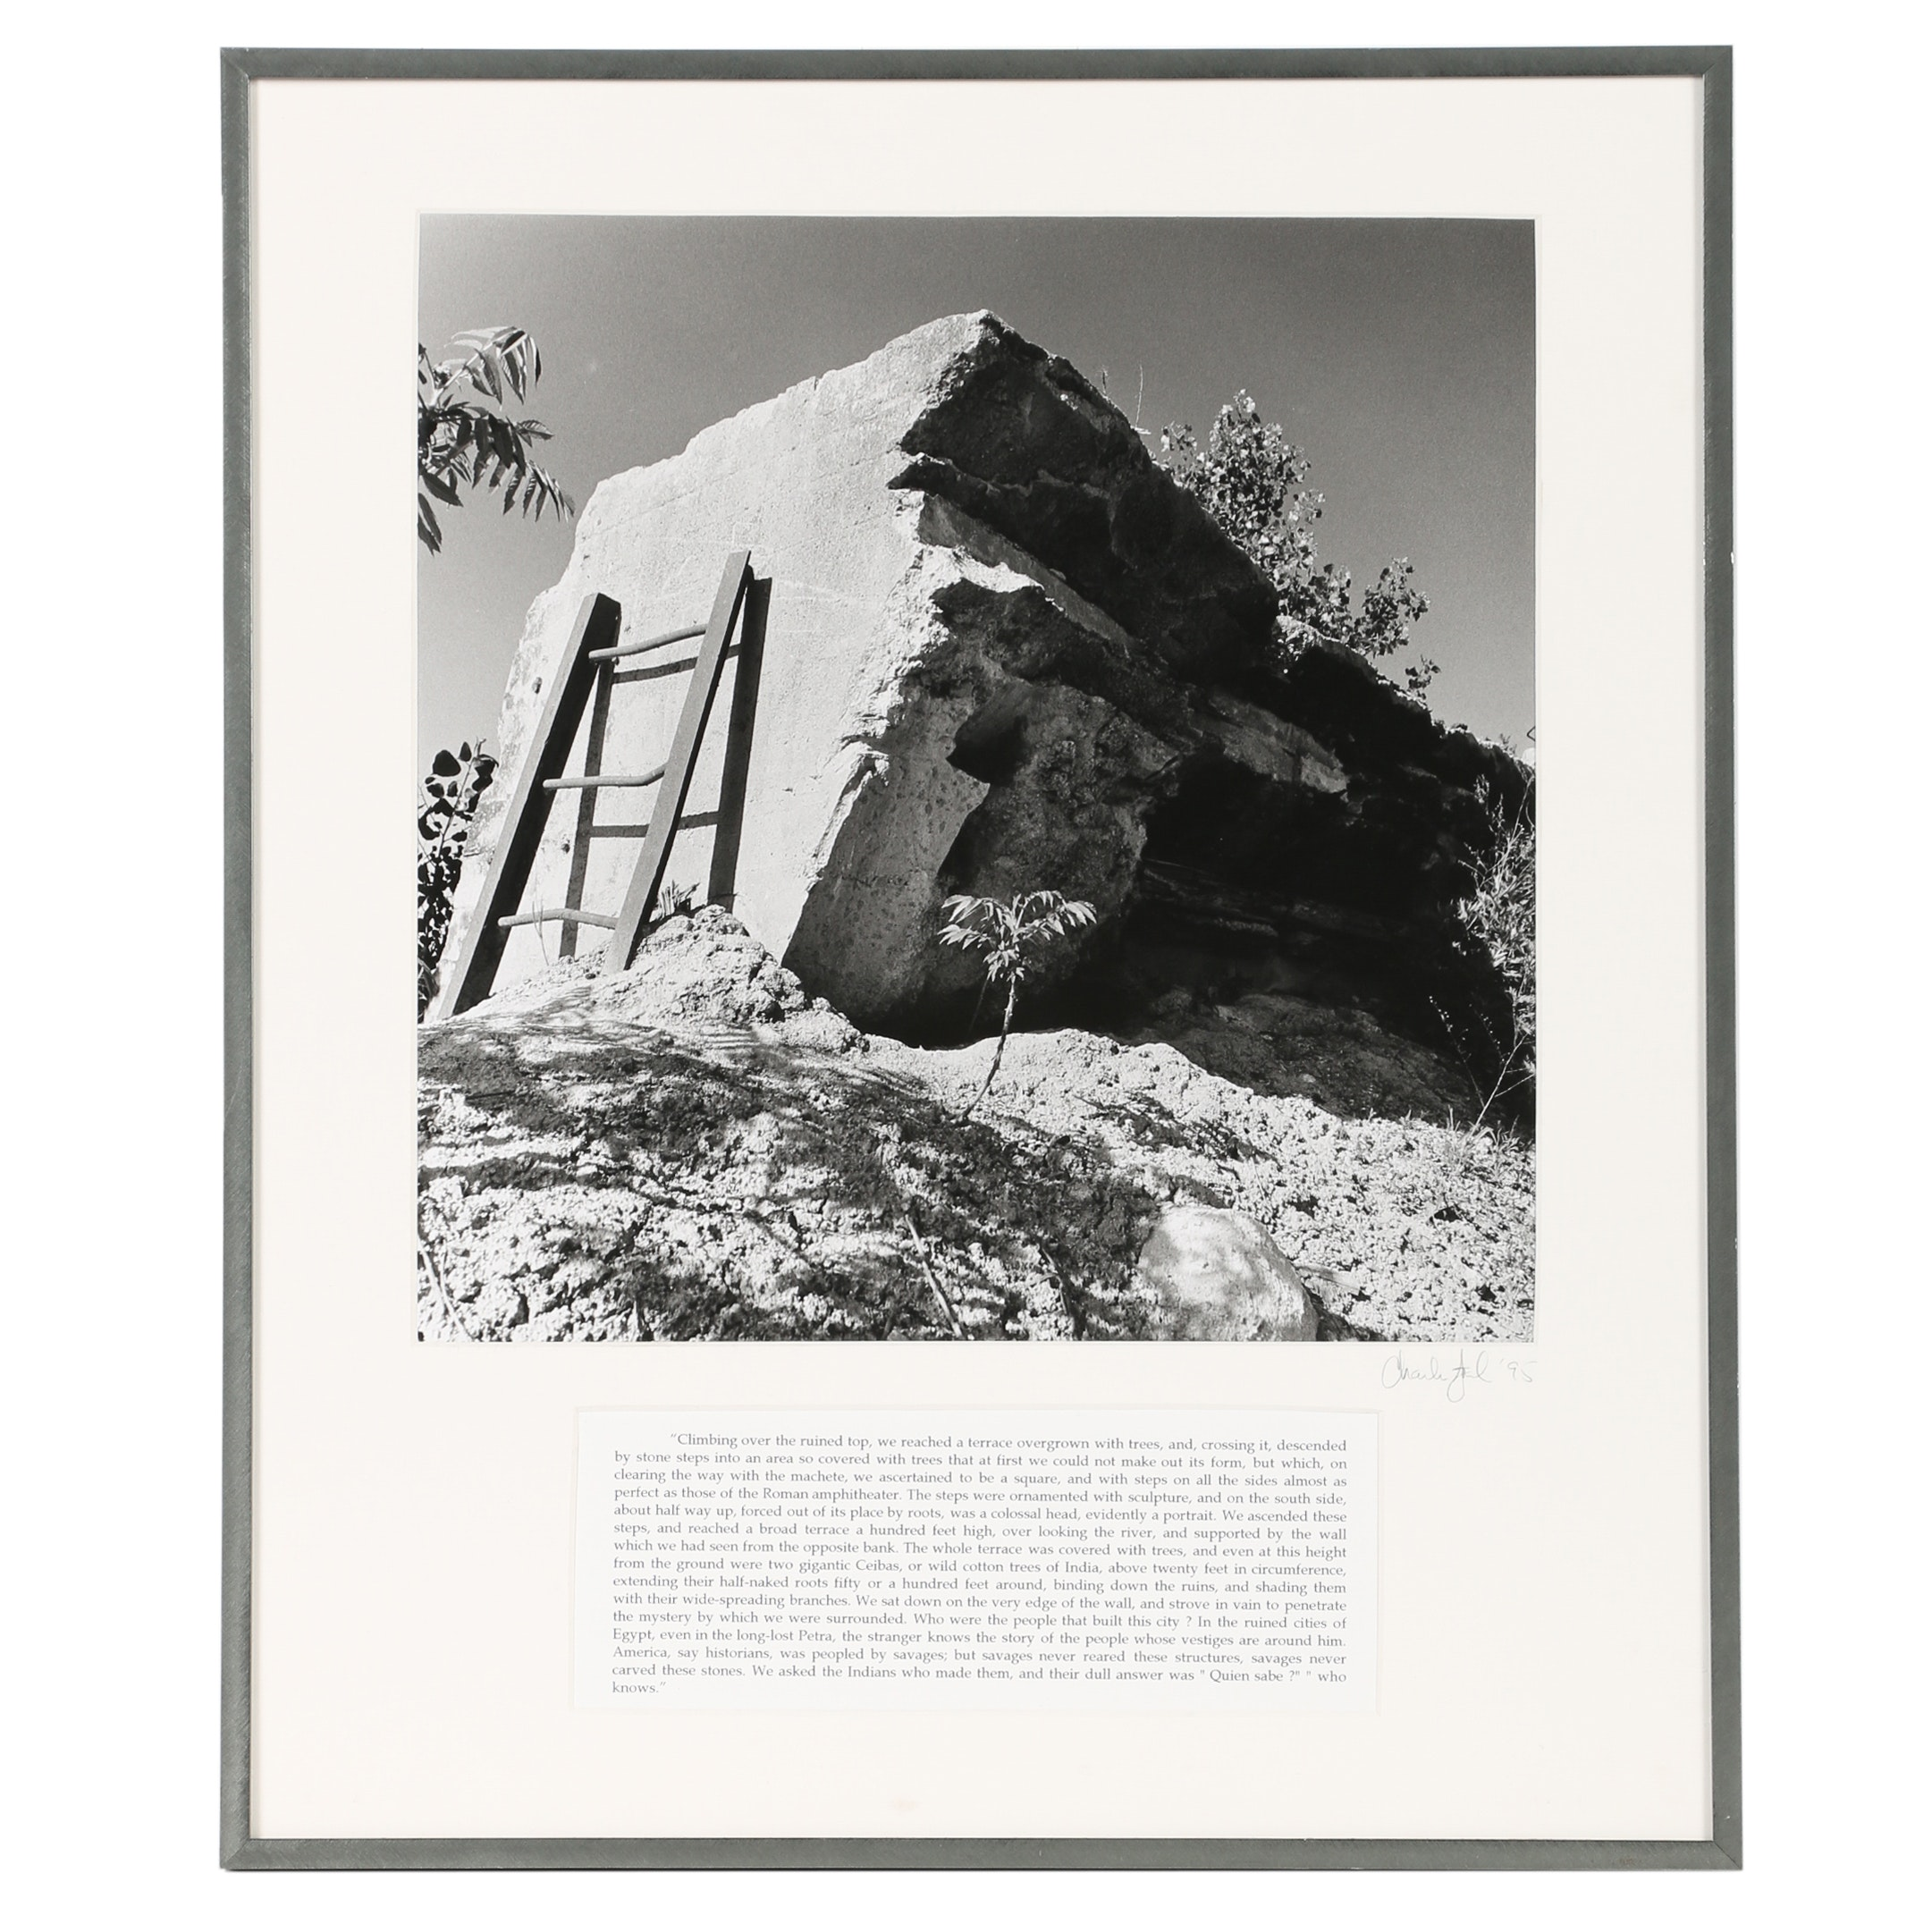 Charles Agel Silver Gelatin Photograph